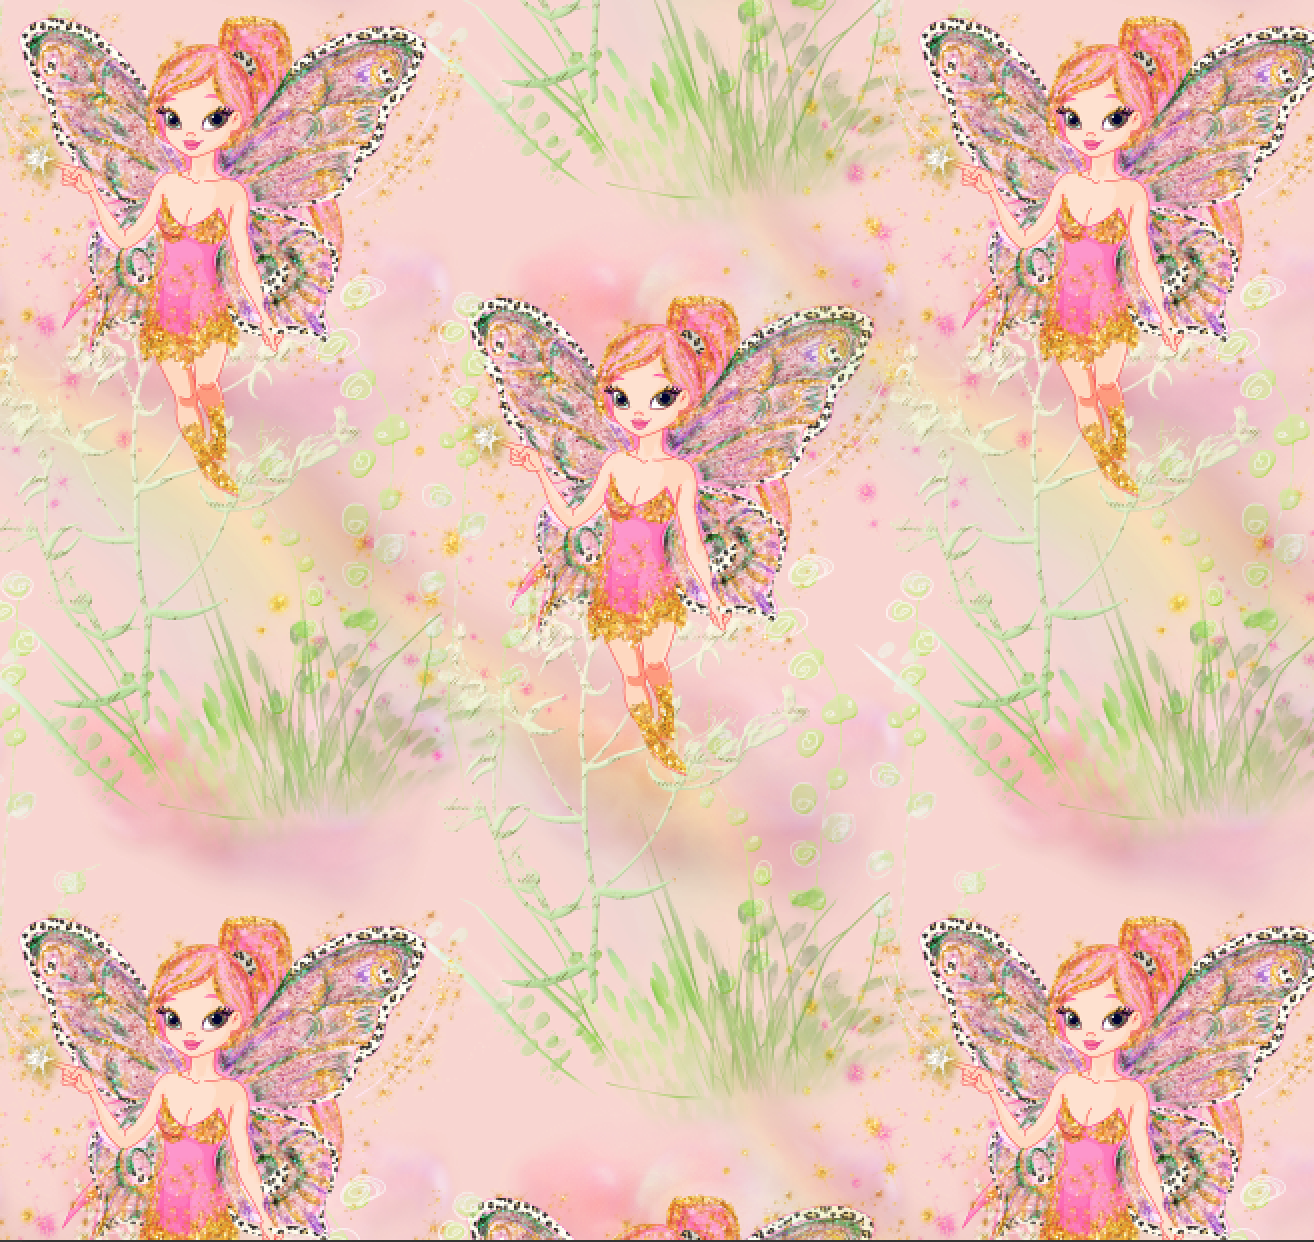 PRE ORDER Magical Garden Pink Fairies - Digital Fabric Print